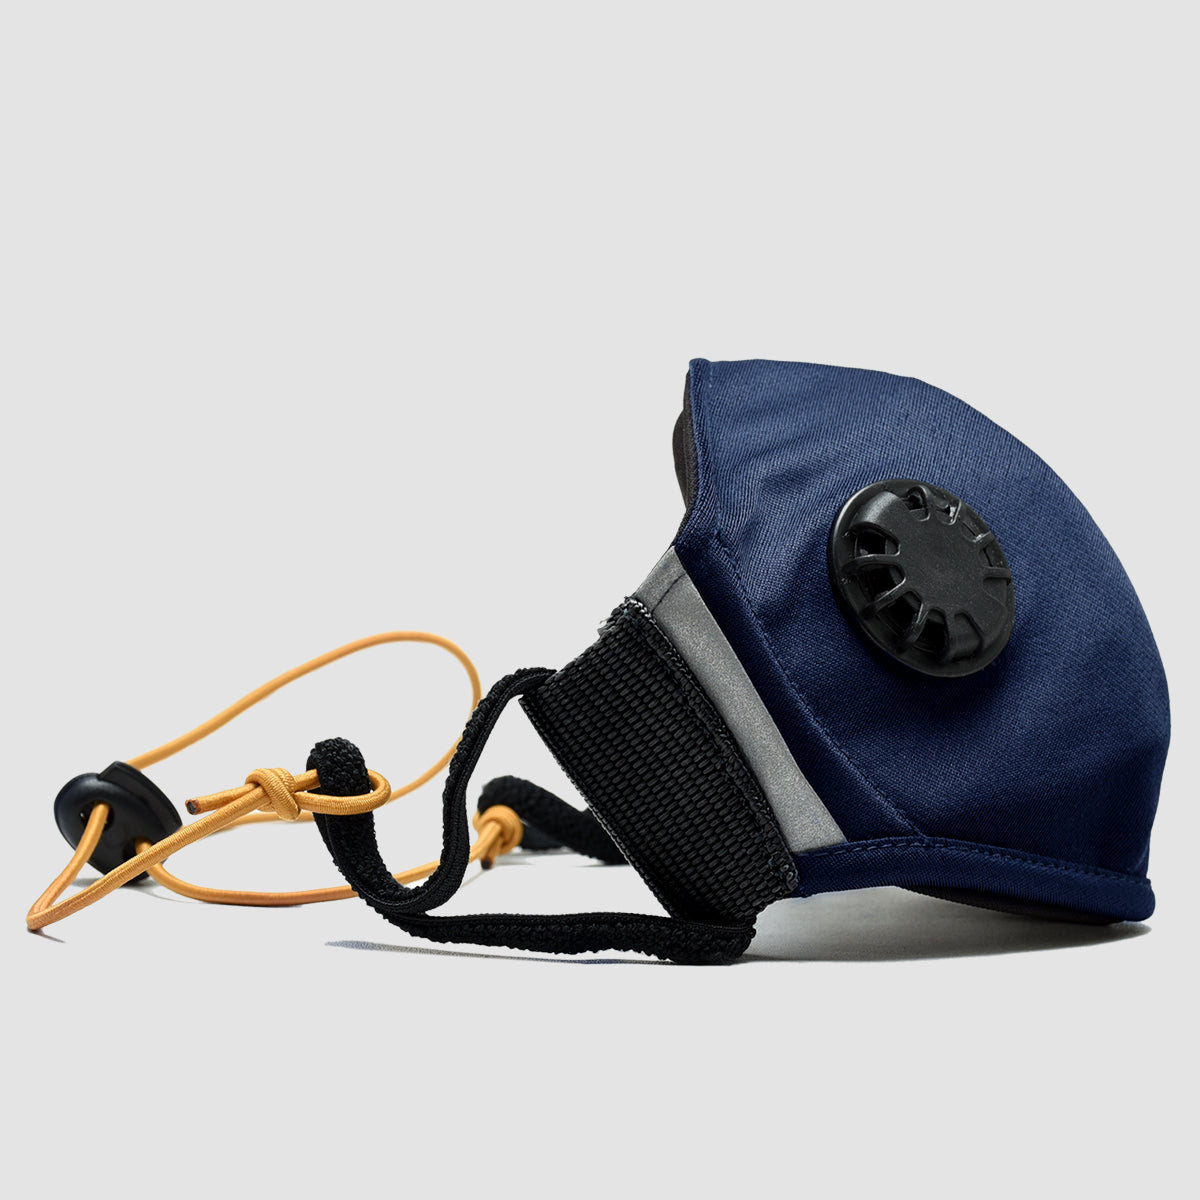 Ergo Activ Mask Space Blue